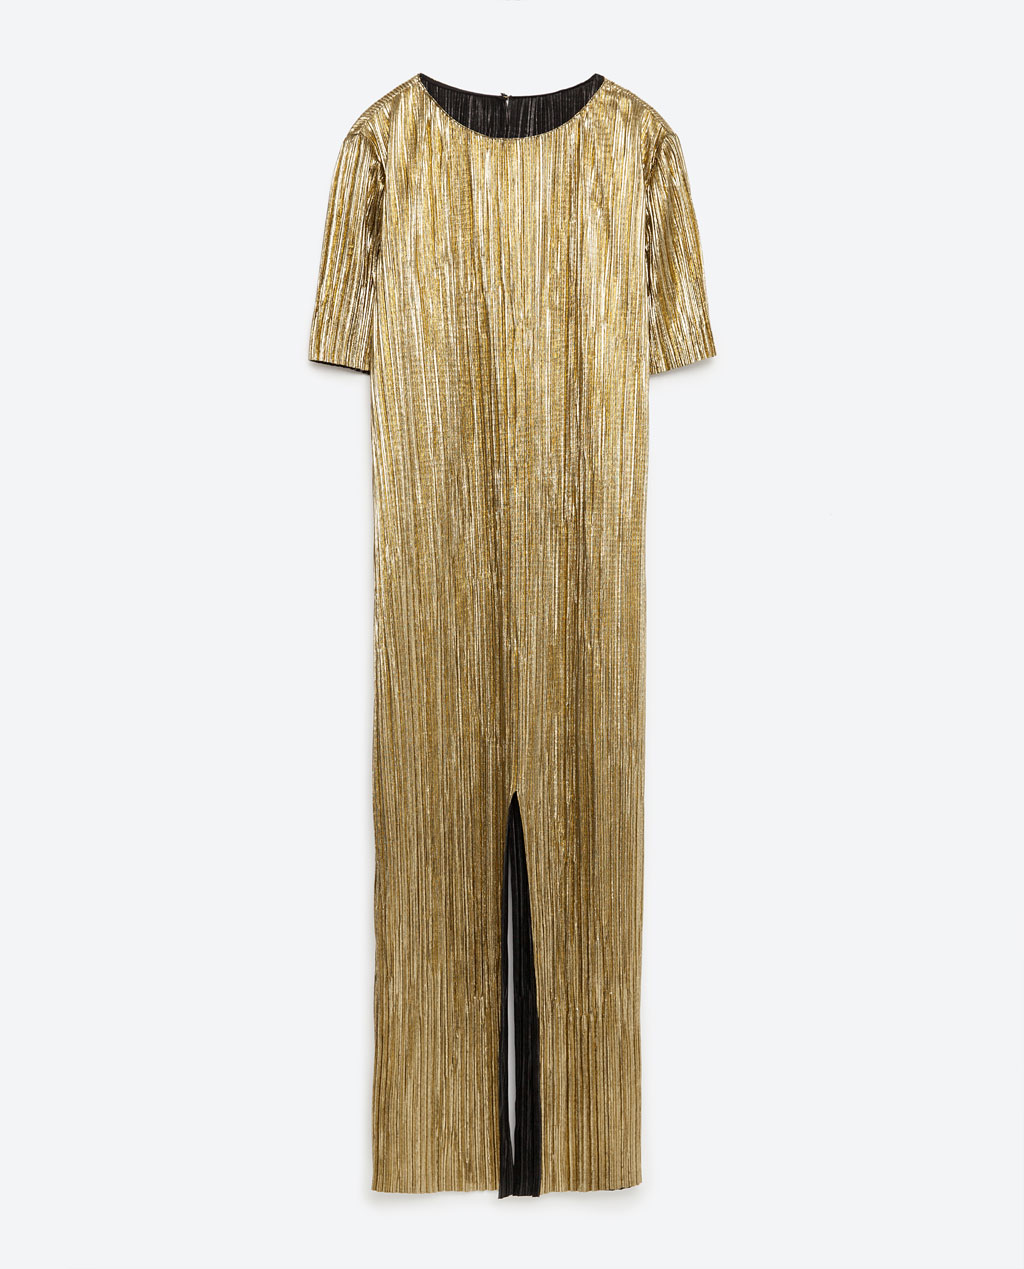 Zara - PLEATED DRESS 29.99